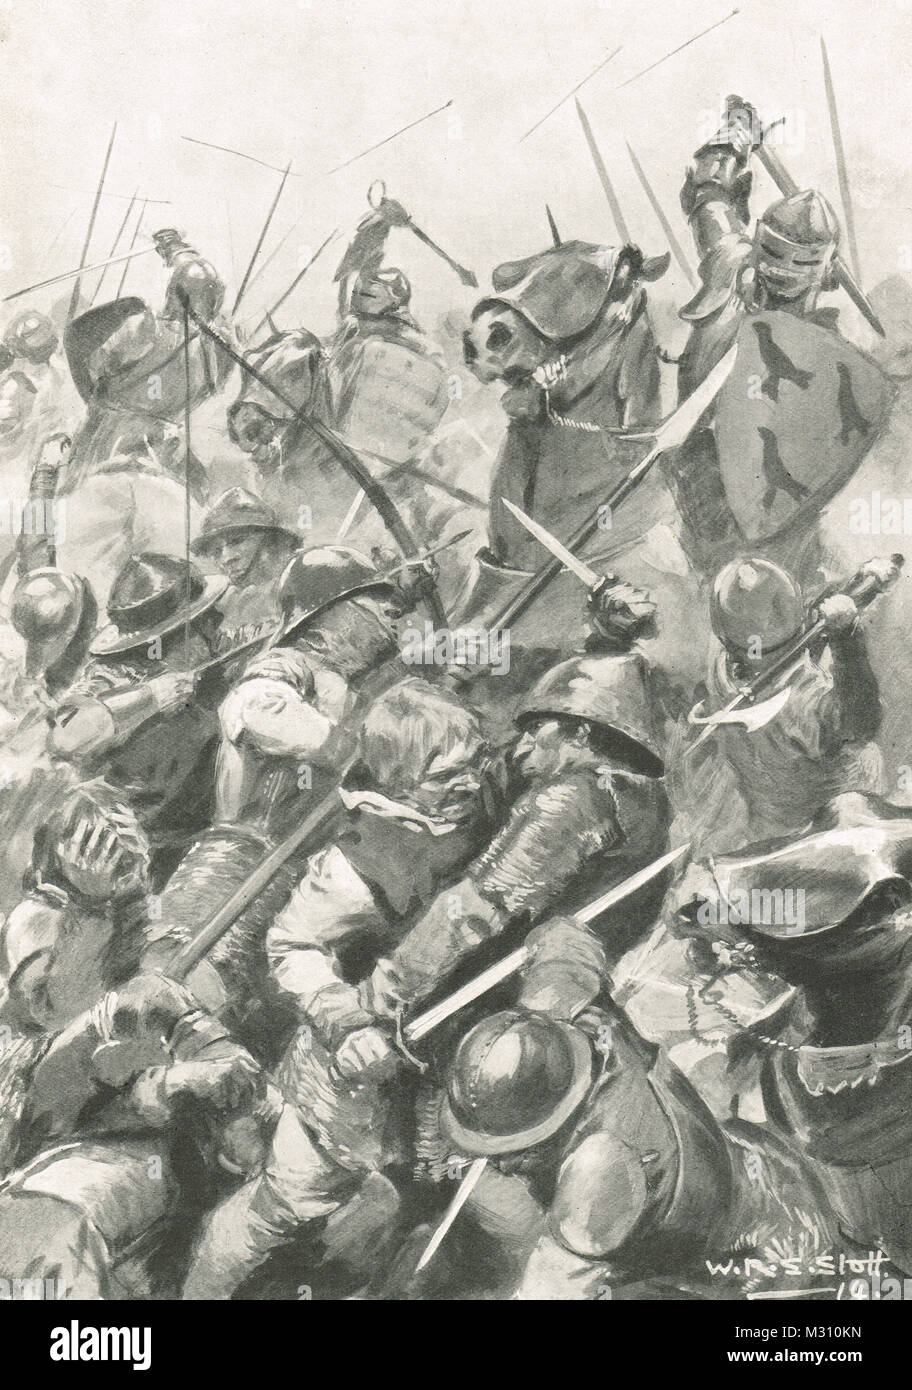 Battle of Bosworth Field, 22 August 1485, last significant battle of the Wars of the Roses - Stock Image